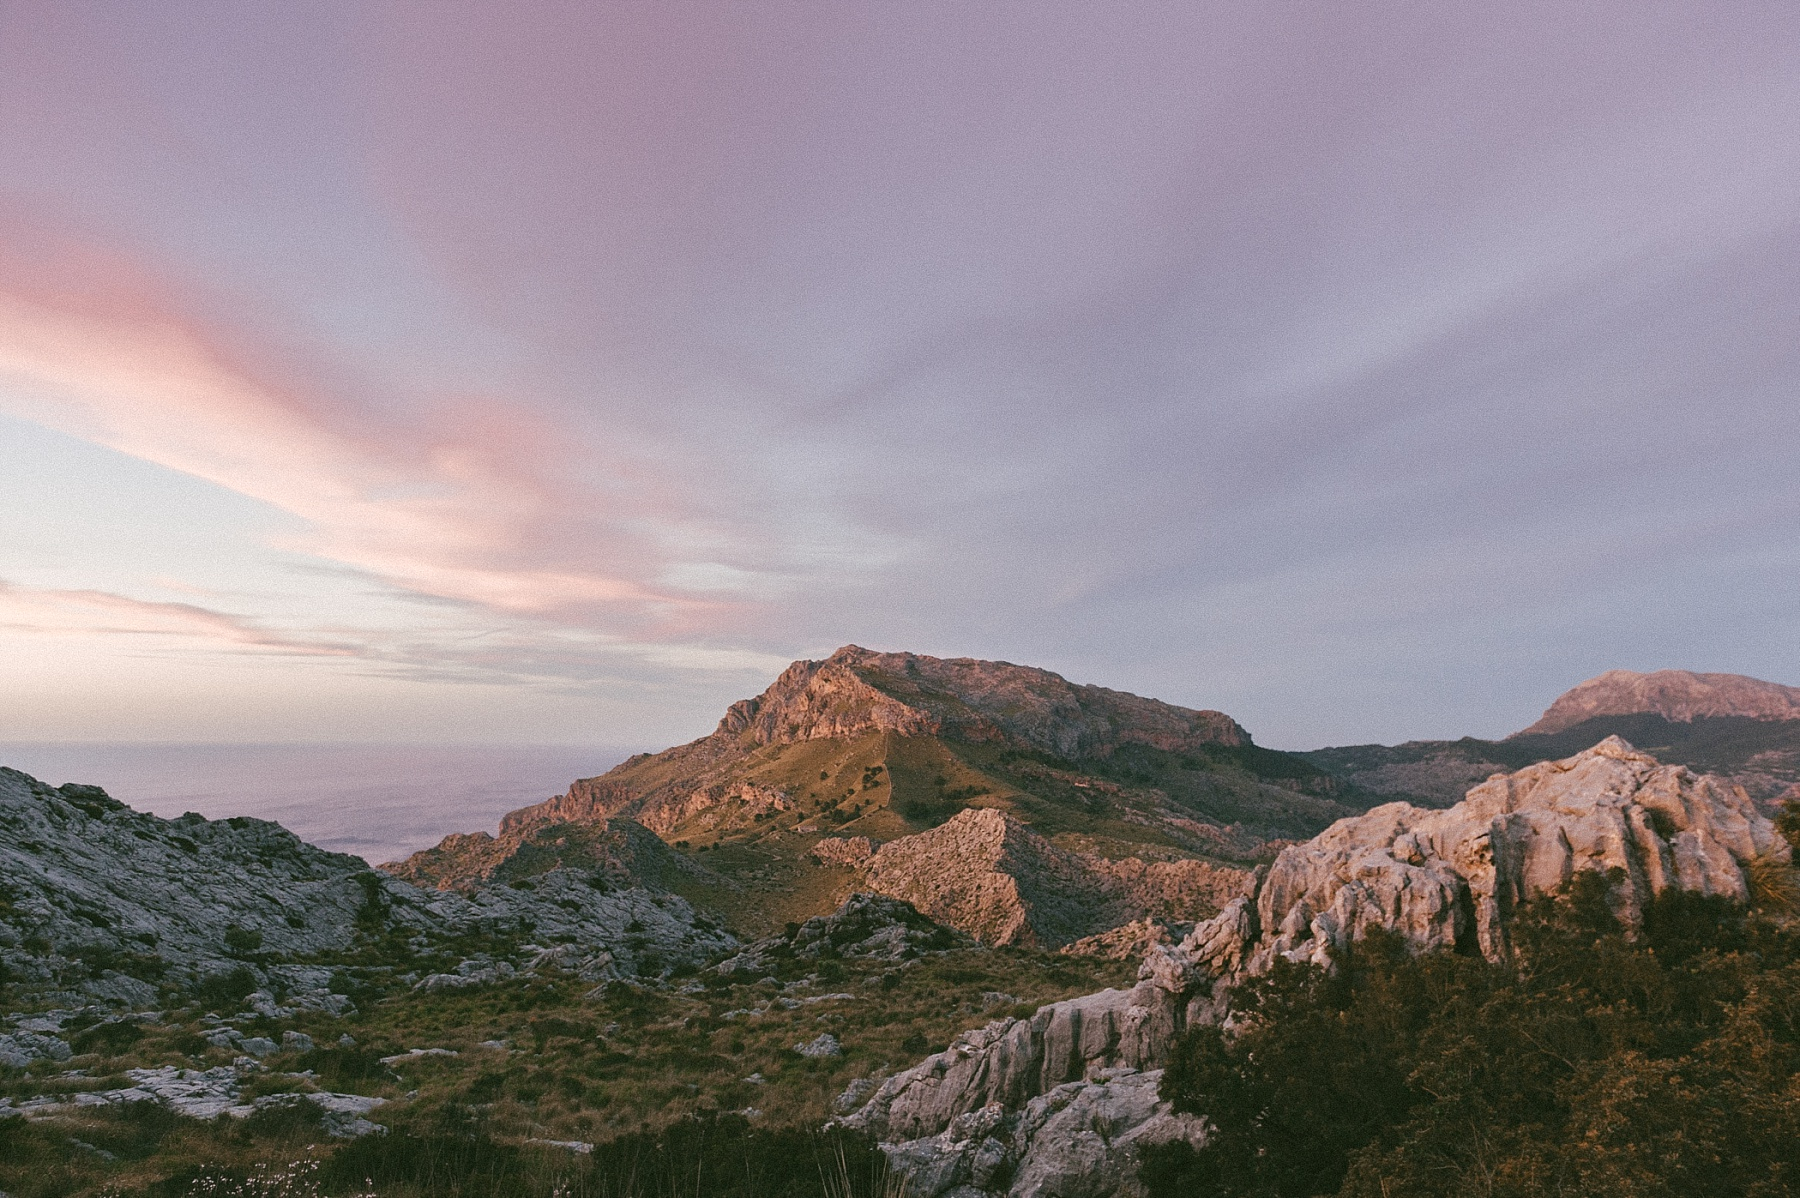 Mountain scene photod by Mallorca wedding photographer